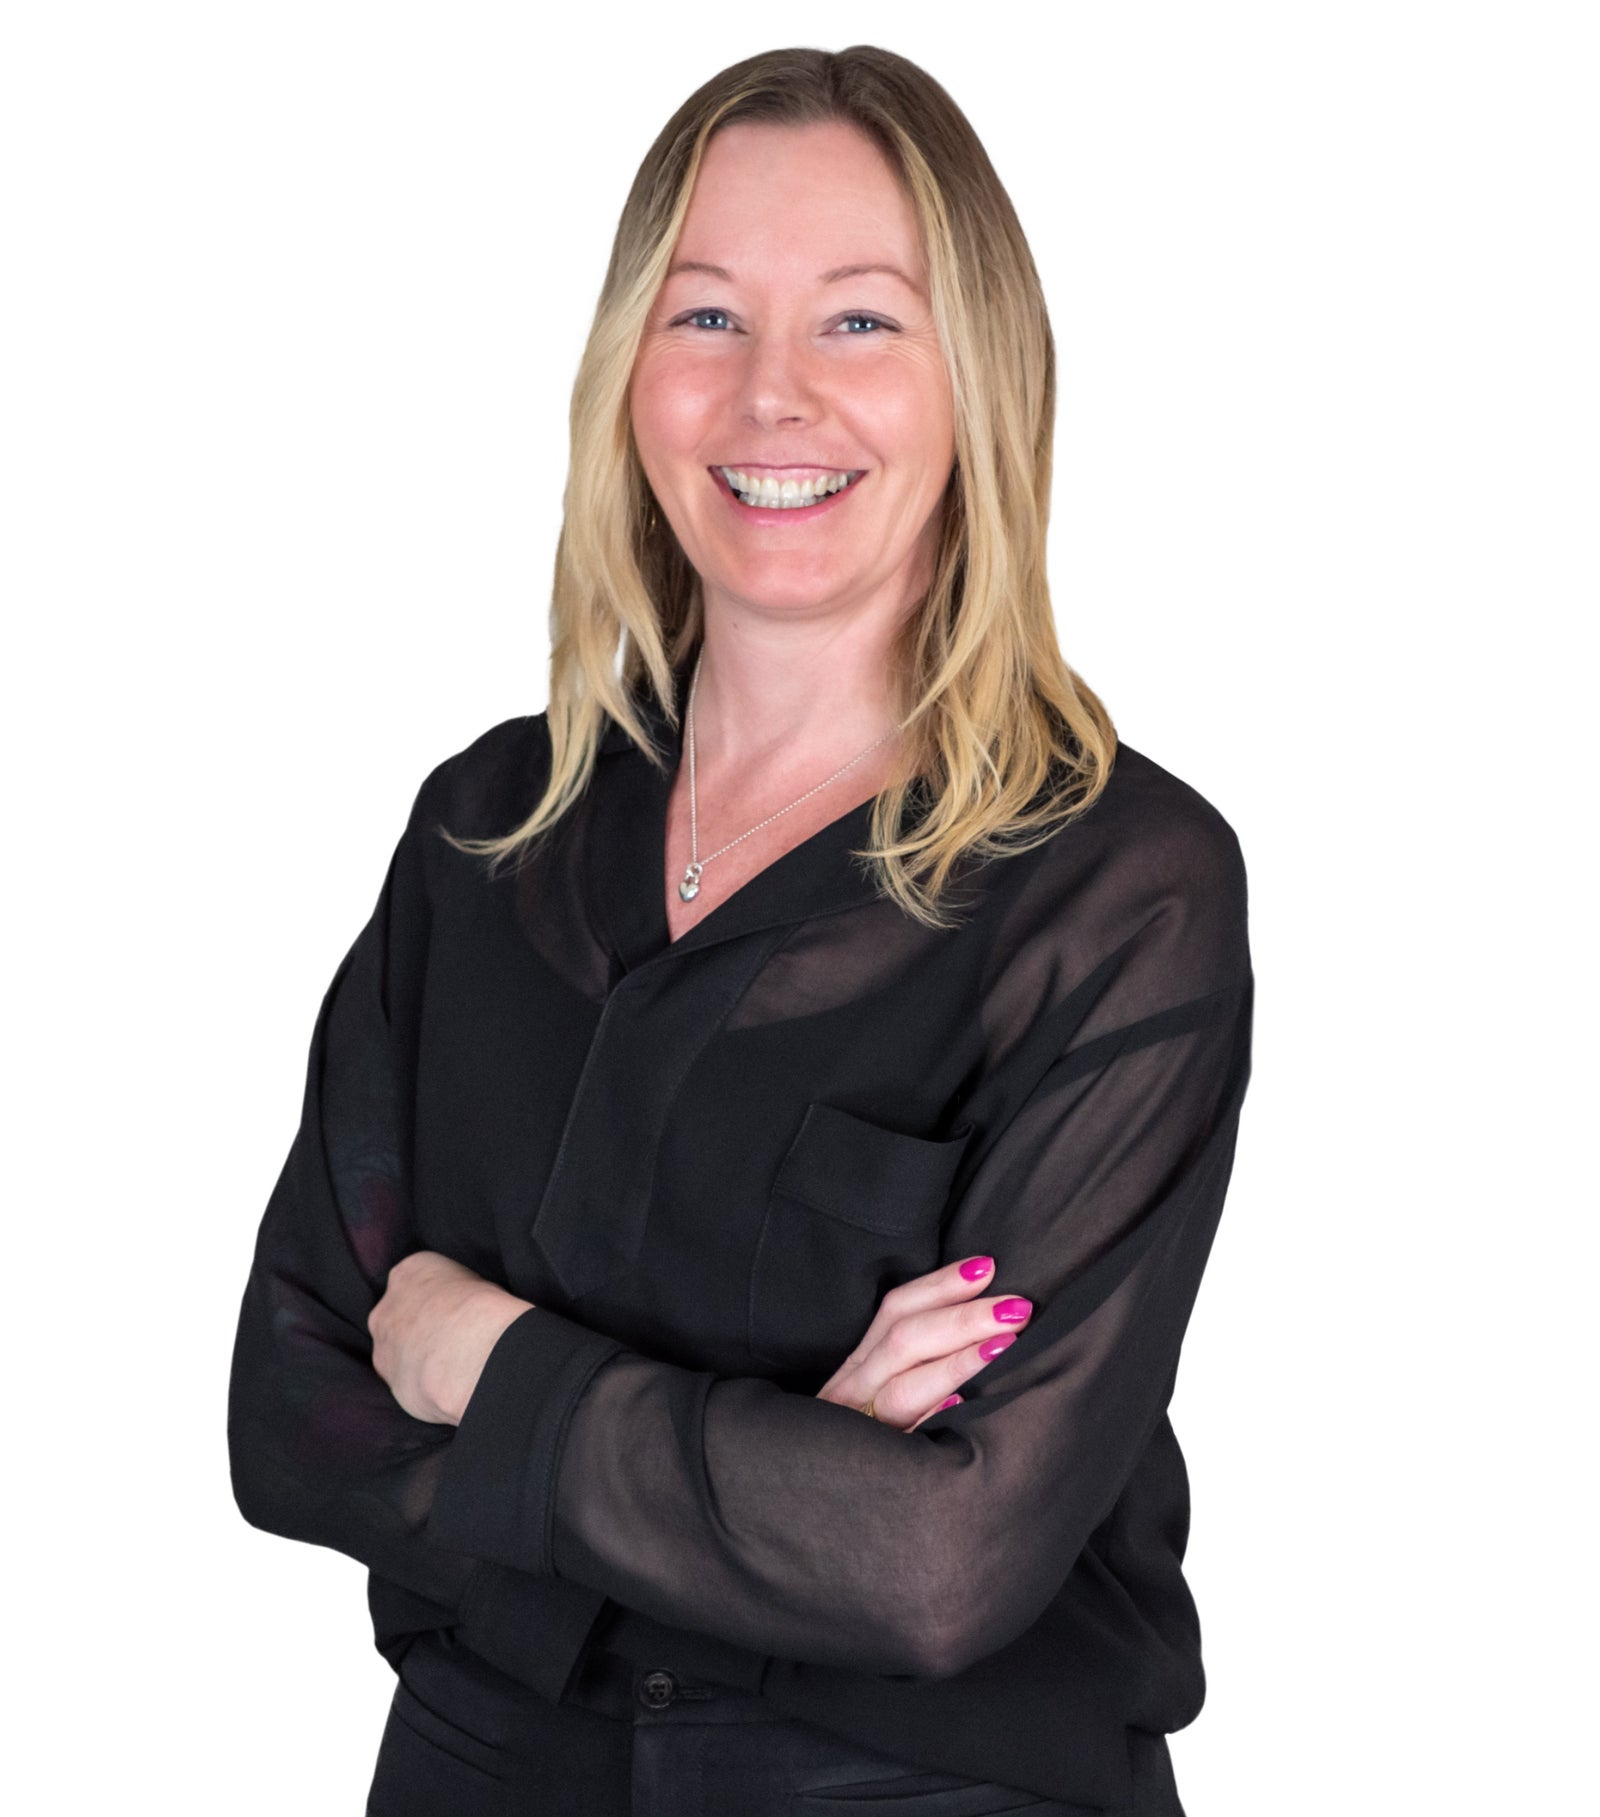 Tara Sullivan - Award-winning Re/Max Realtor Sunshine Coast, BC